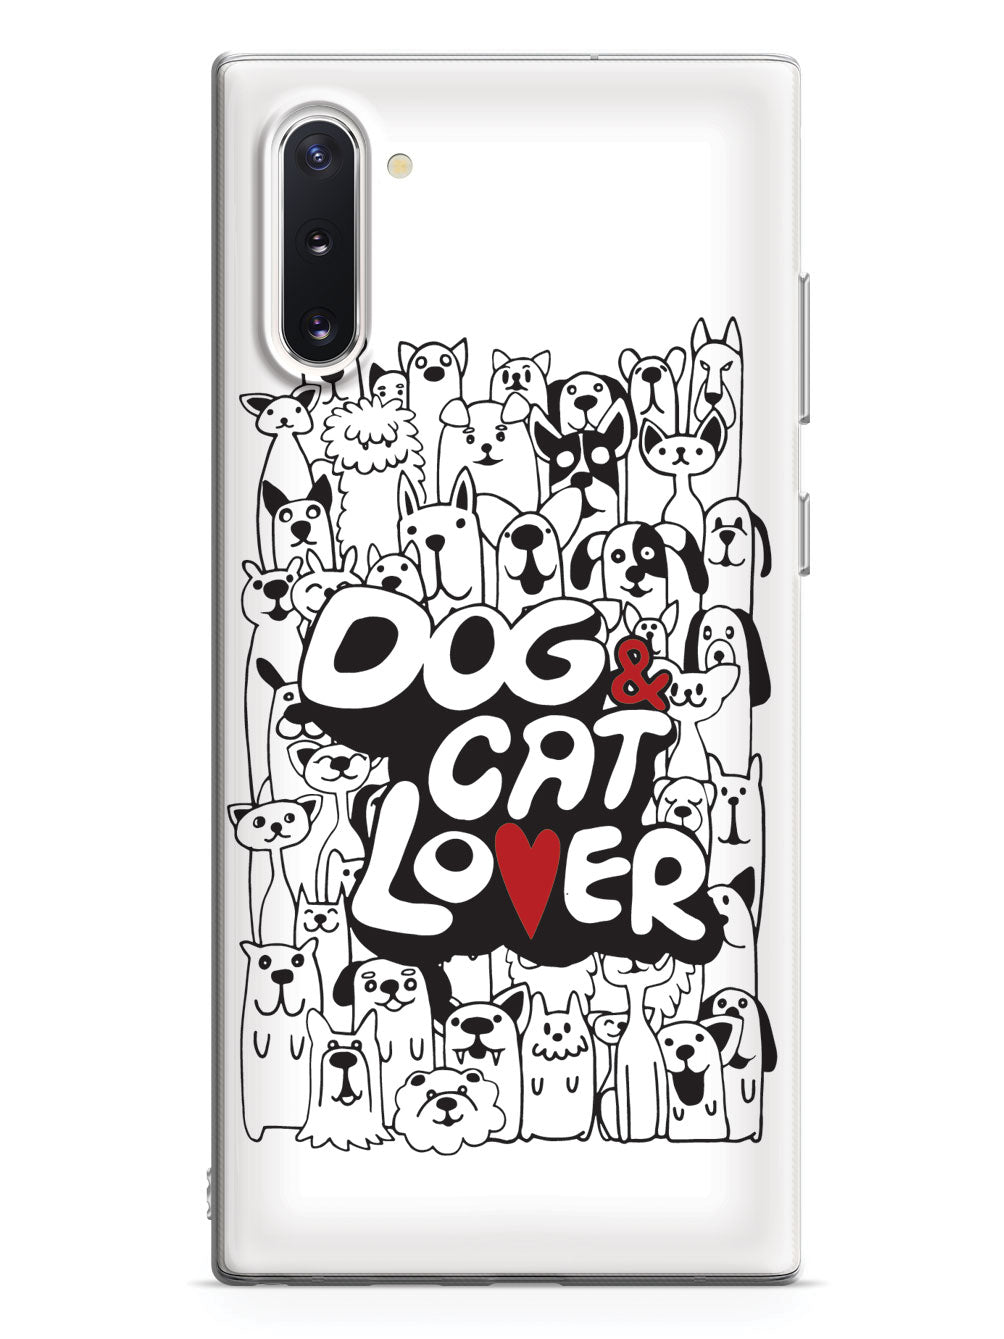 Dog & Cat Lover - White Case